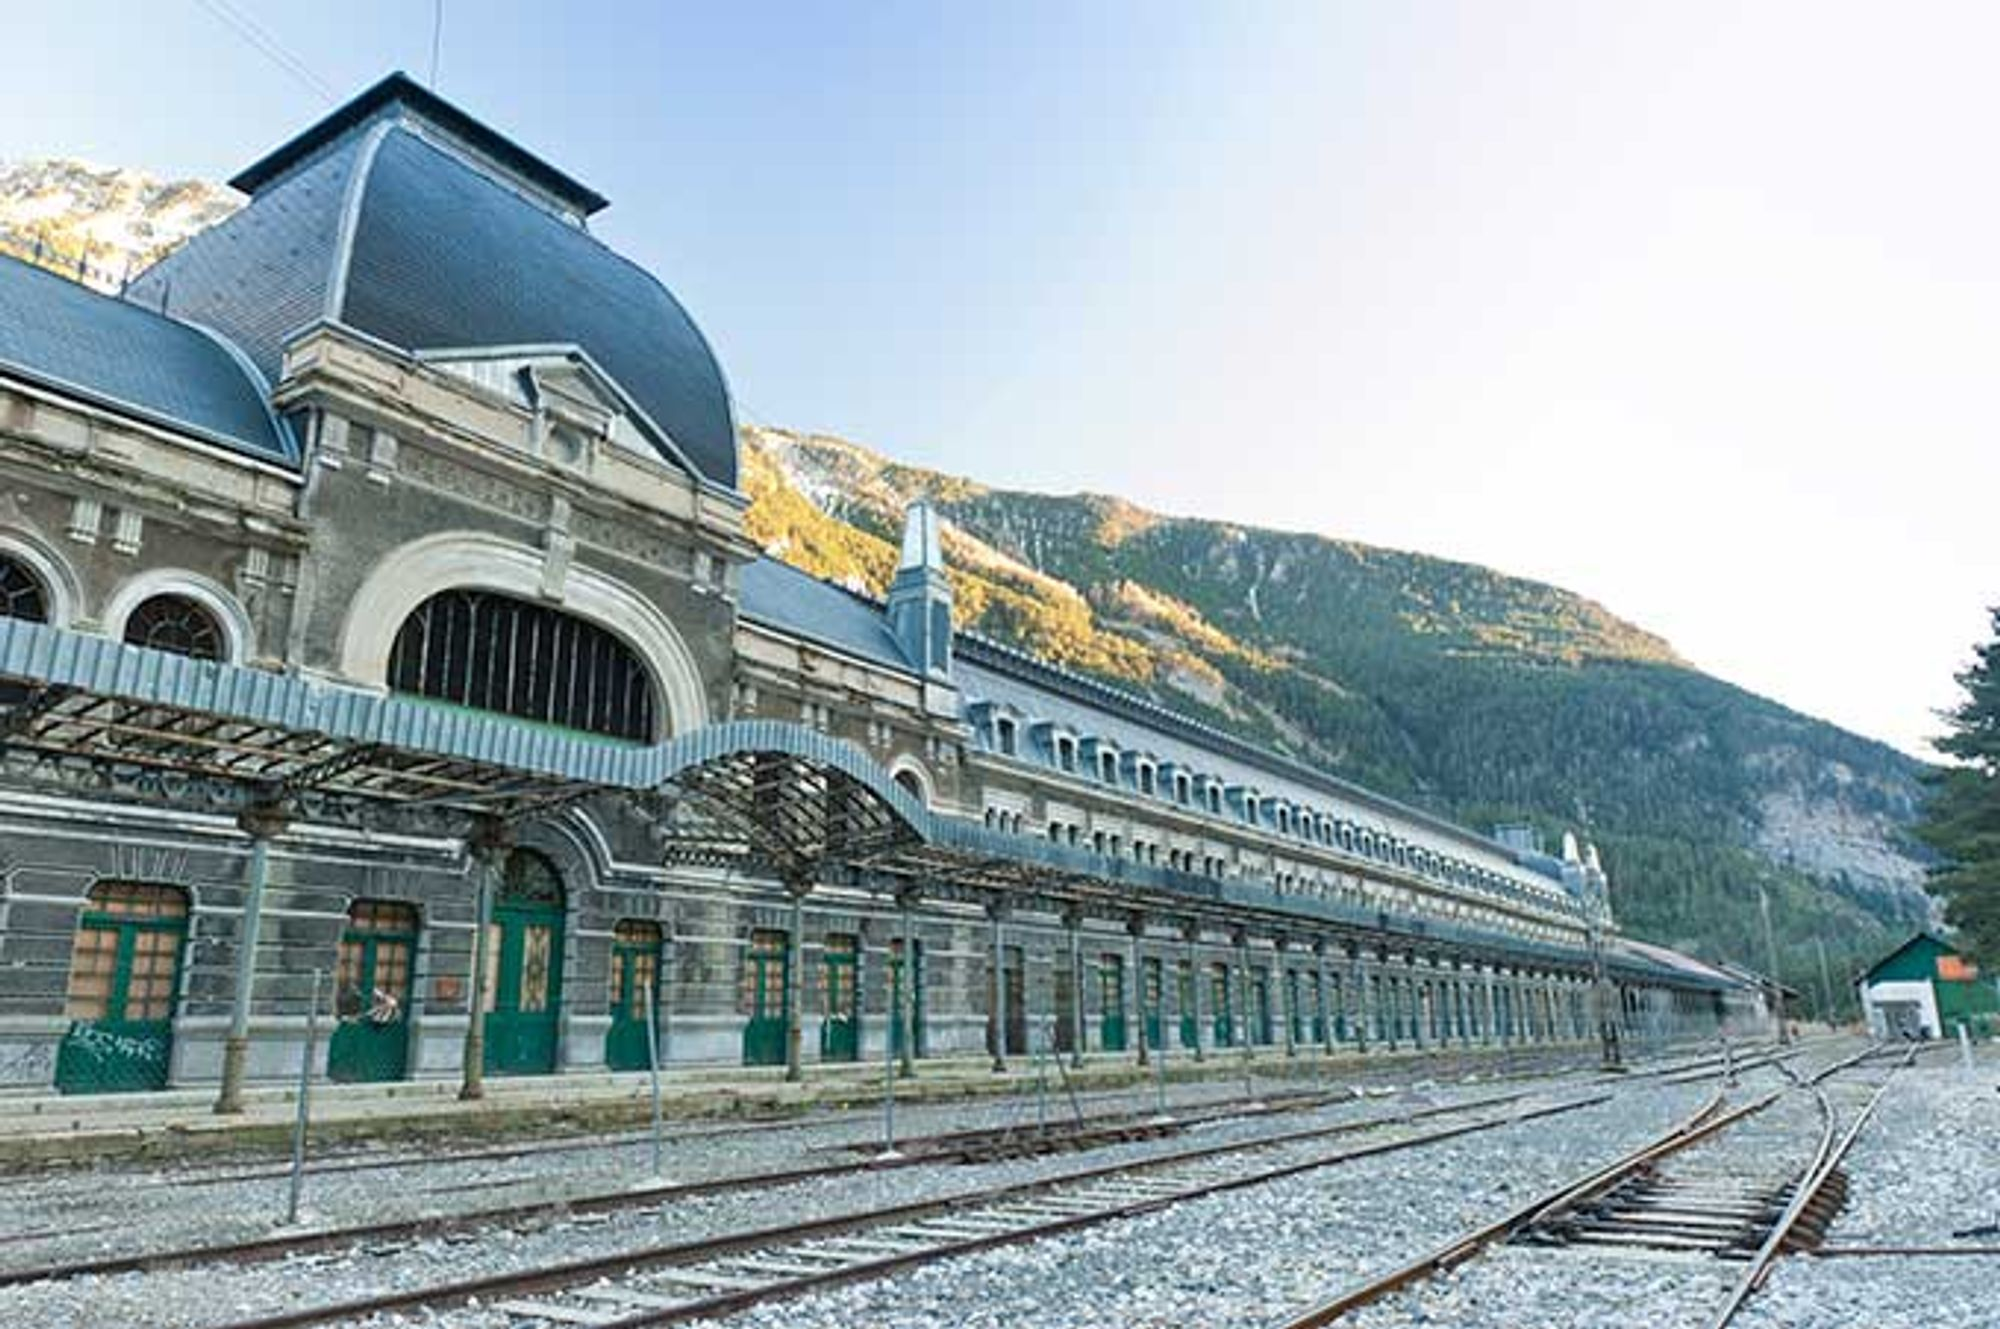 The elegant Canfranc train station, with mountains in the background as empty train tracks roll in front.